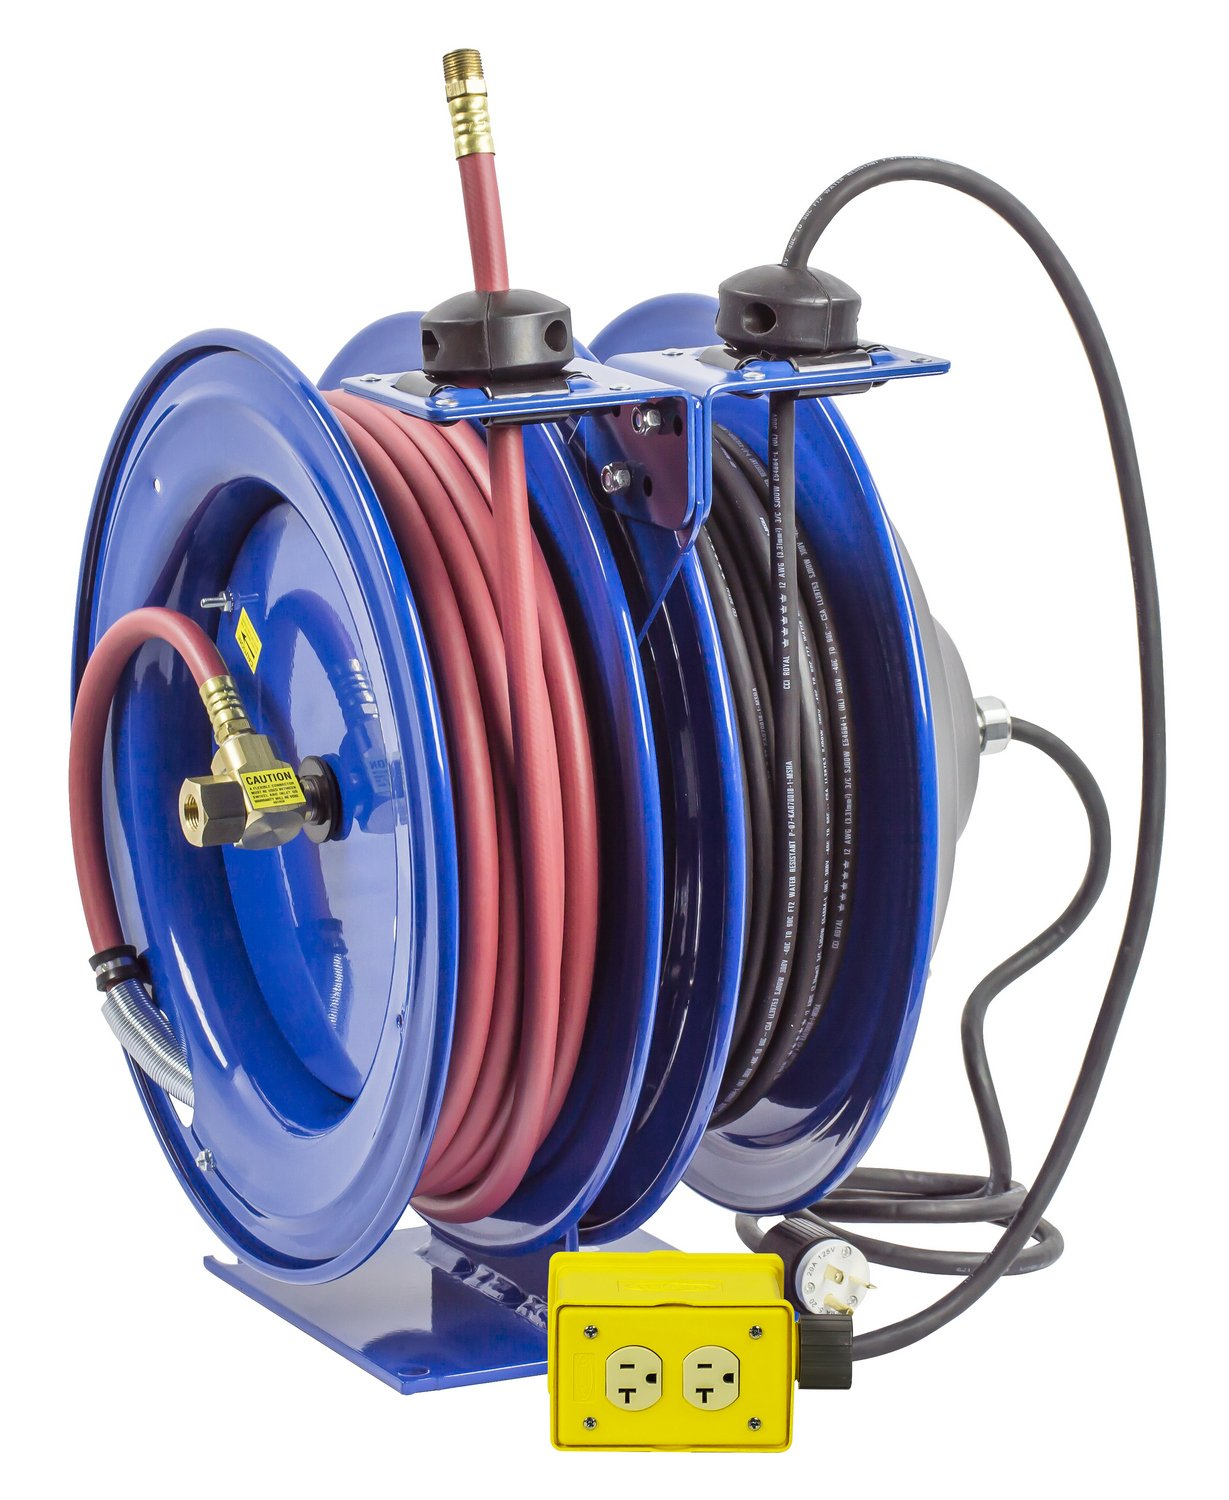 Coxreels C-L350-5012-B Combo Air and Electric Hose Reel with Quad Outlet Attachment, 3/8'' Hose ID, 50' Length by Coxreels (Image #1)